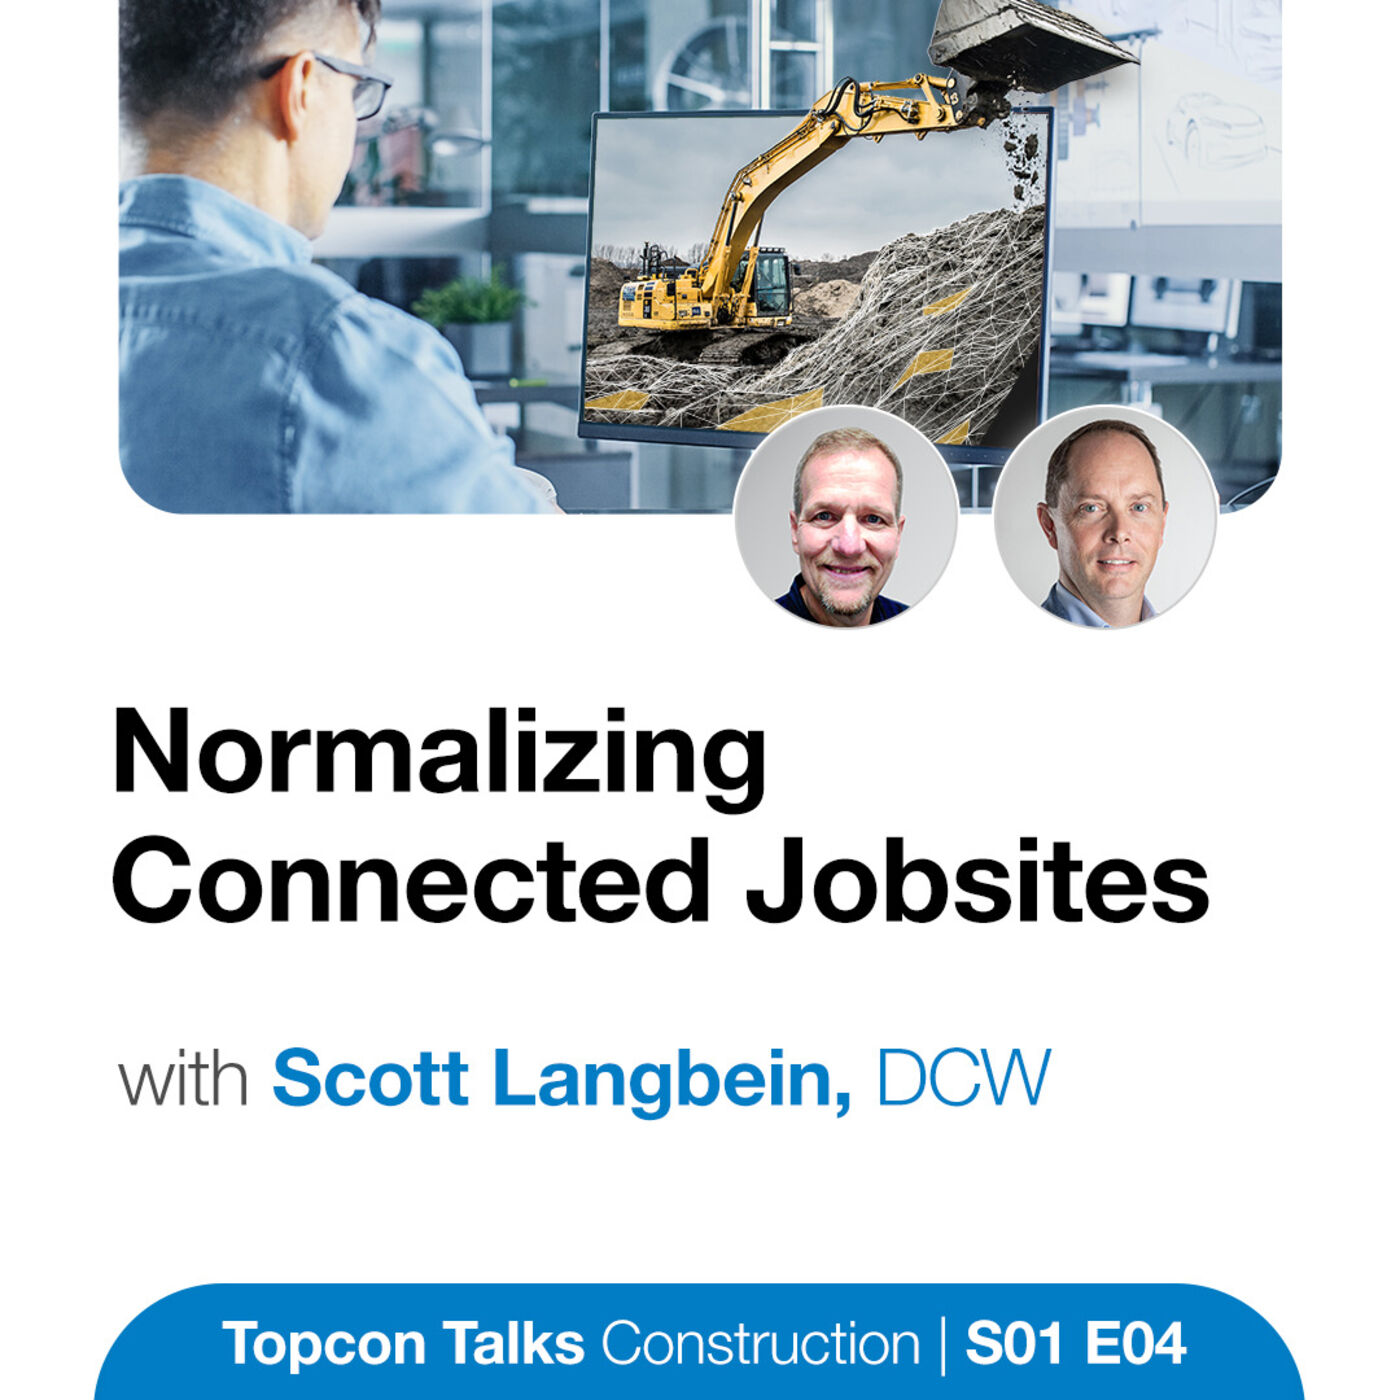 Normalizing Connected Jobsites | S01E04